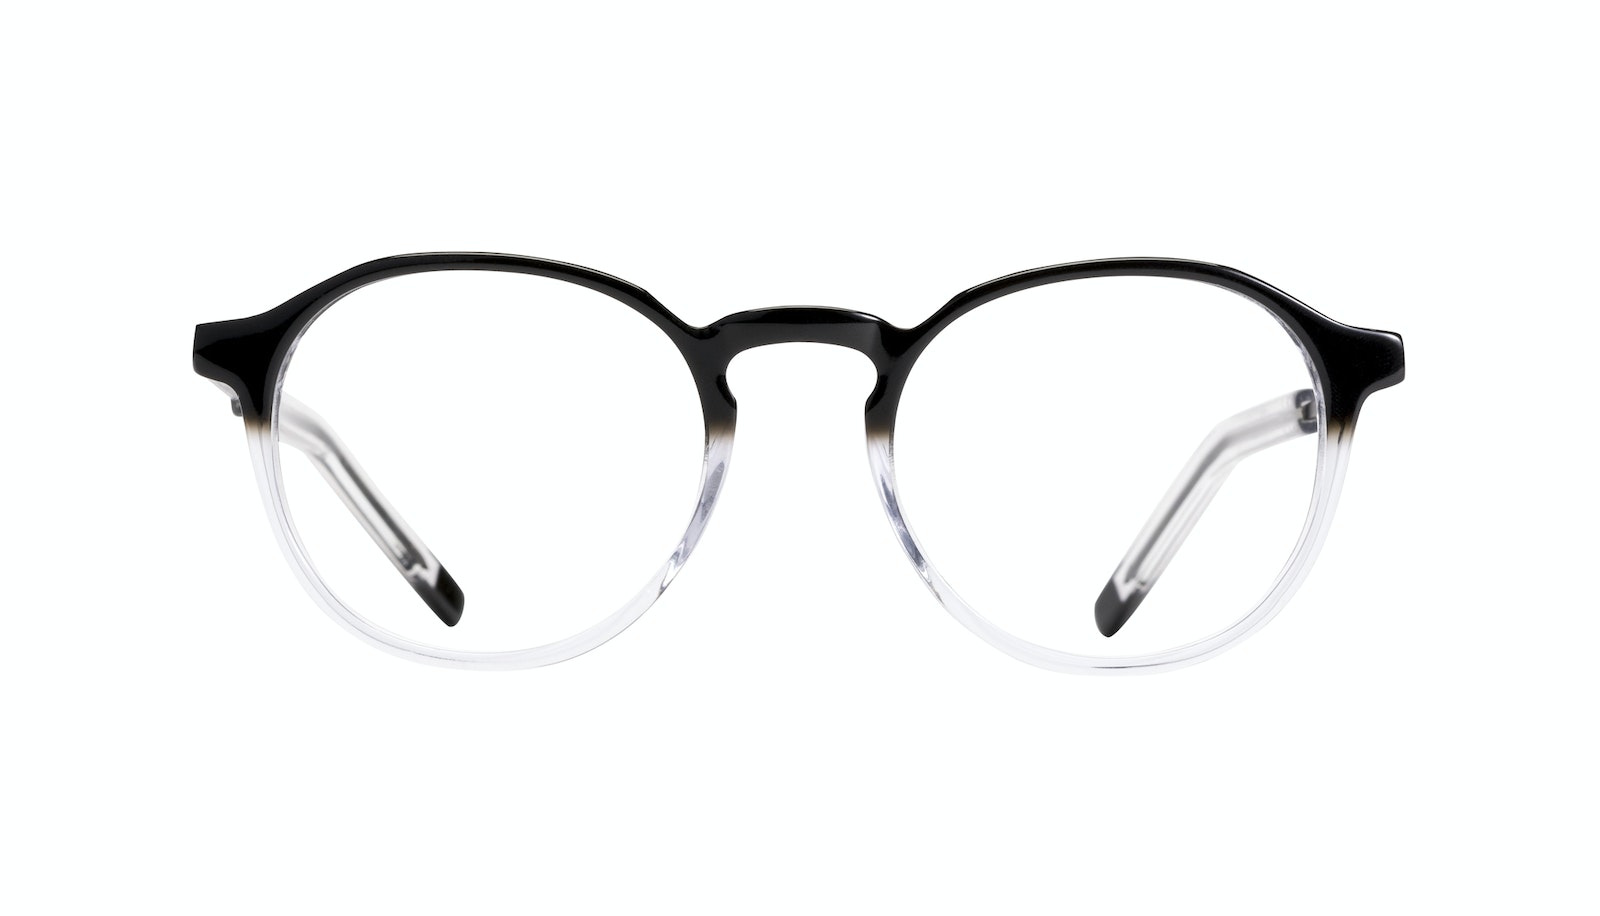 304a17537754 Affordable Fashion Glasses Round Eyeglasses Men Prime Onyx Clear